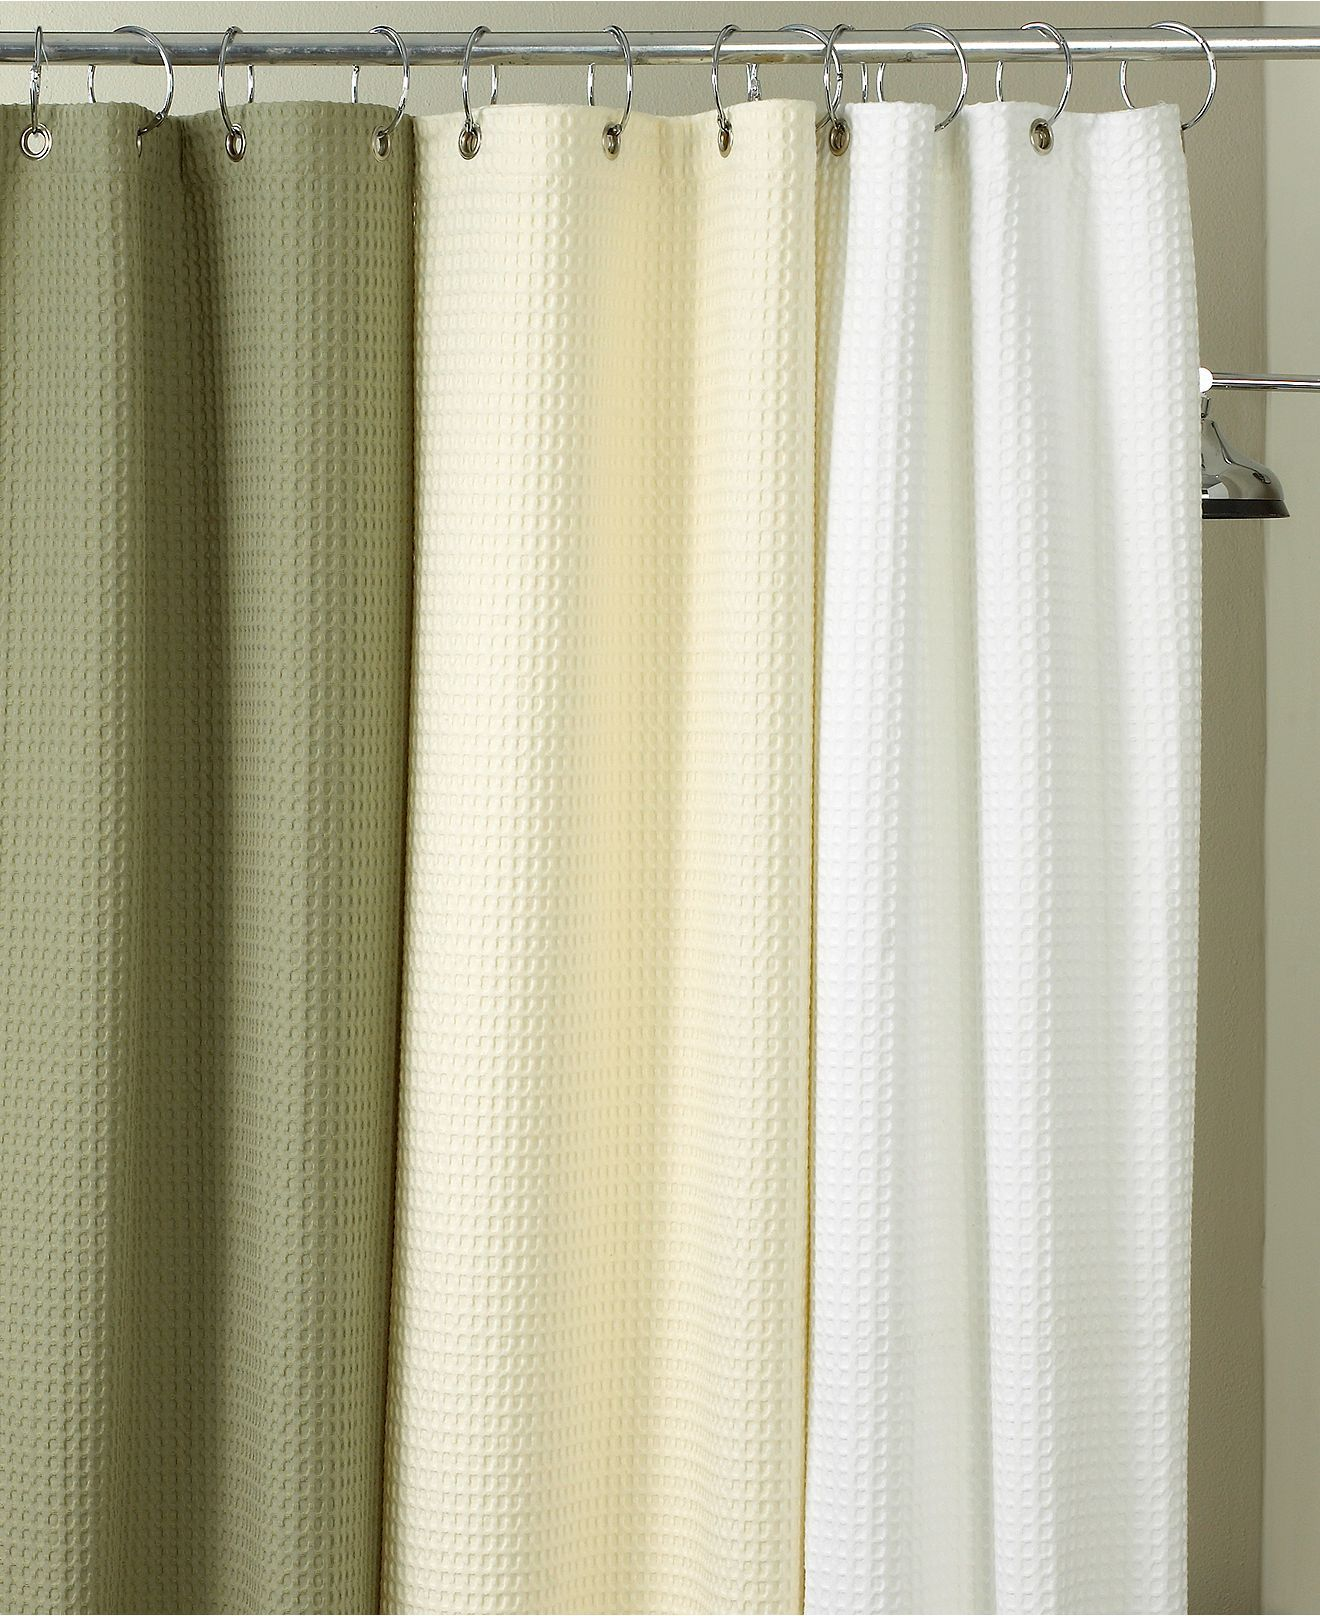 White Waffle Spa Shower Curtain Hotel Collection Shower Curtain